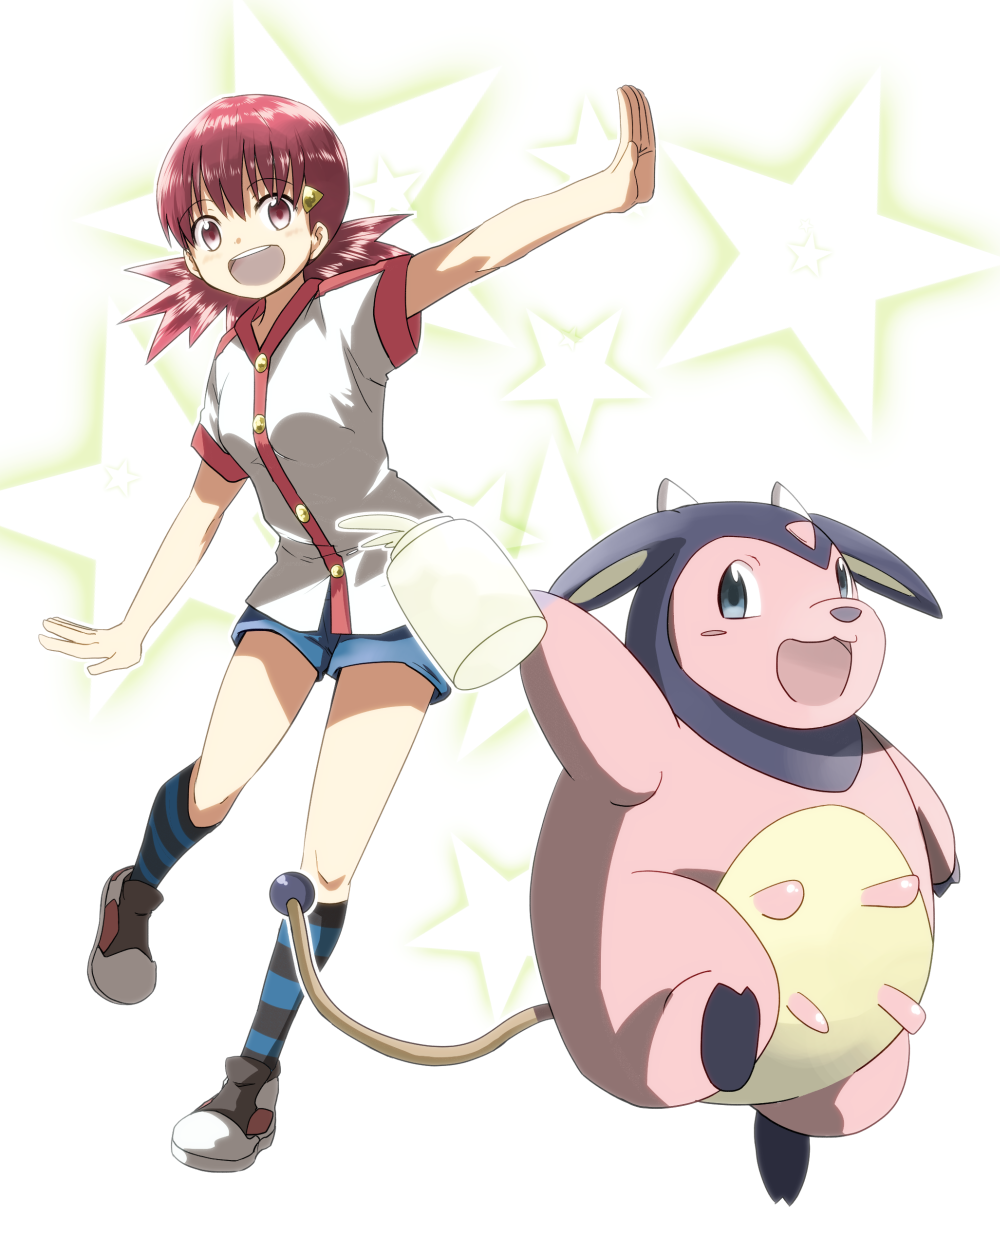 1girl :3 :d akane_(pokemon) bangs bare_arms blue_eyes blue_shorts blush blush_stickers bottle breasts buttons cow eyebrows_visible_through_hair full_body gym_leader hair_ornament highres holding horns kneehighs leg_up looking_at_viewer medium_breasts milk milk_bottle miltank naga_(naga54321) open_mouth outline outstretched_arms pink_eyes pink_hair pokemon pokemon_(creature) pokemon_(game) pokemon_hgss shirt shoes short_hair short_sleeves short_twintails shorts simple_background smile standing standing_on_one_leg star starry_background striped striped_legwear tareme teeth tongue twintails udder white_background white_shirt